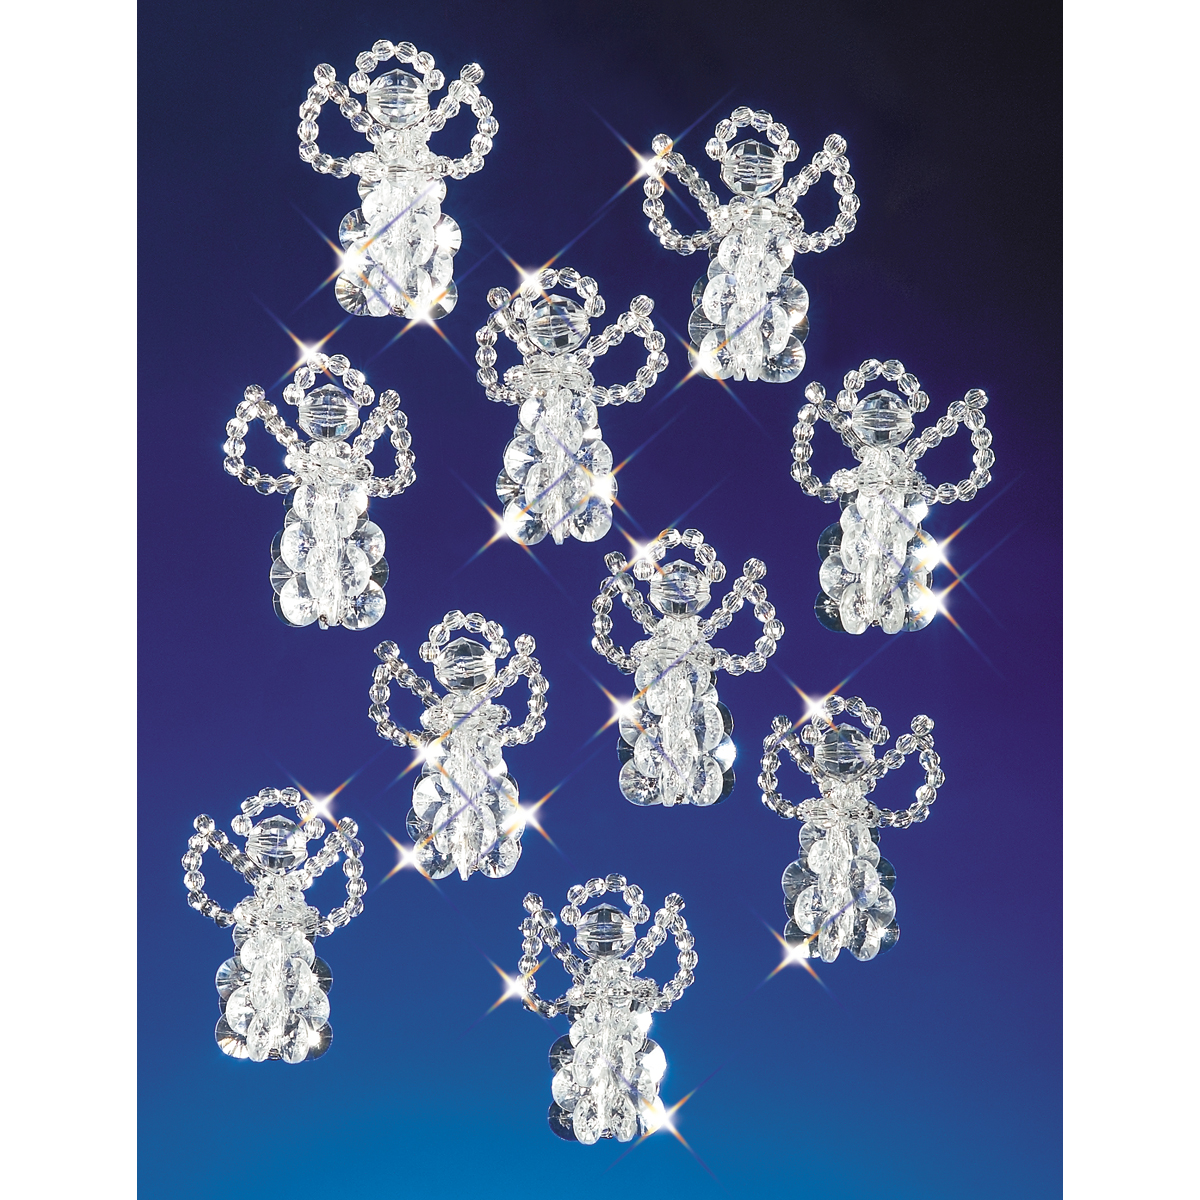 Beadery Holiday Beaded Ornament Kit, 2.5-Inch, Little ...